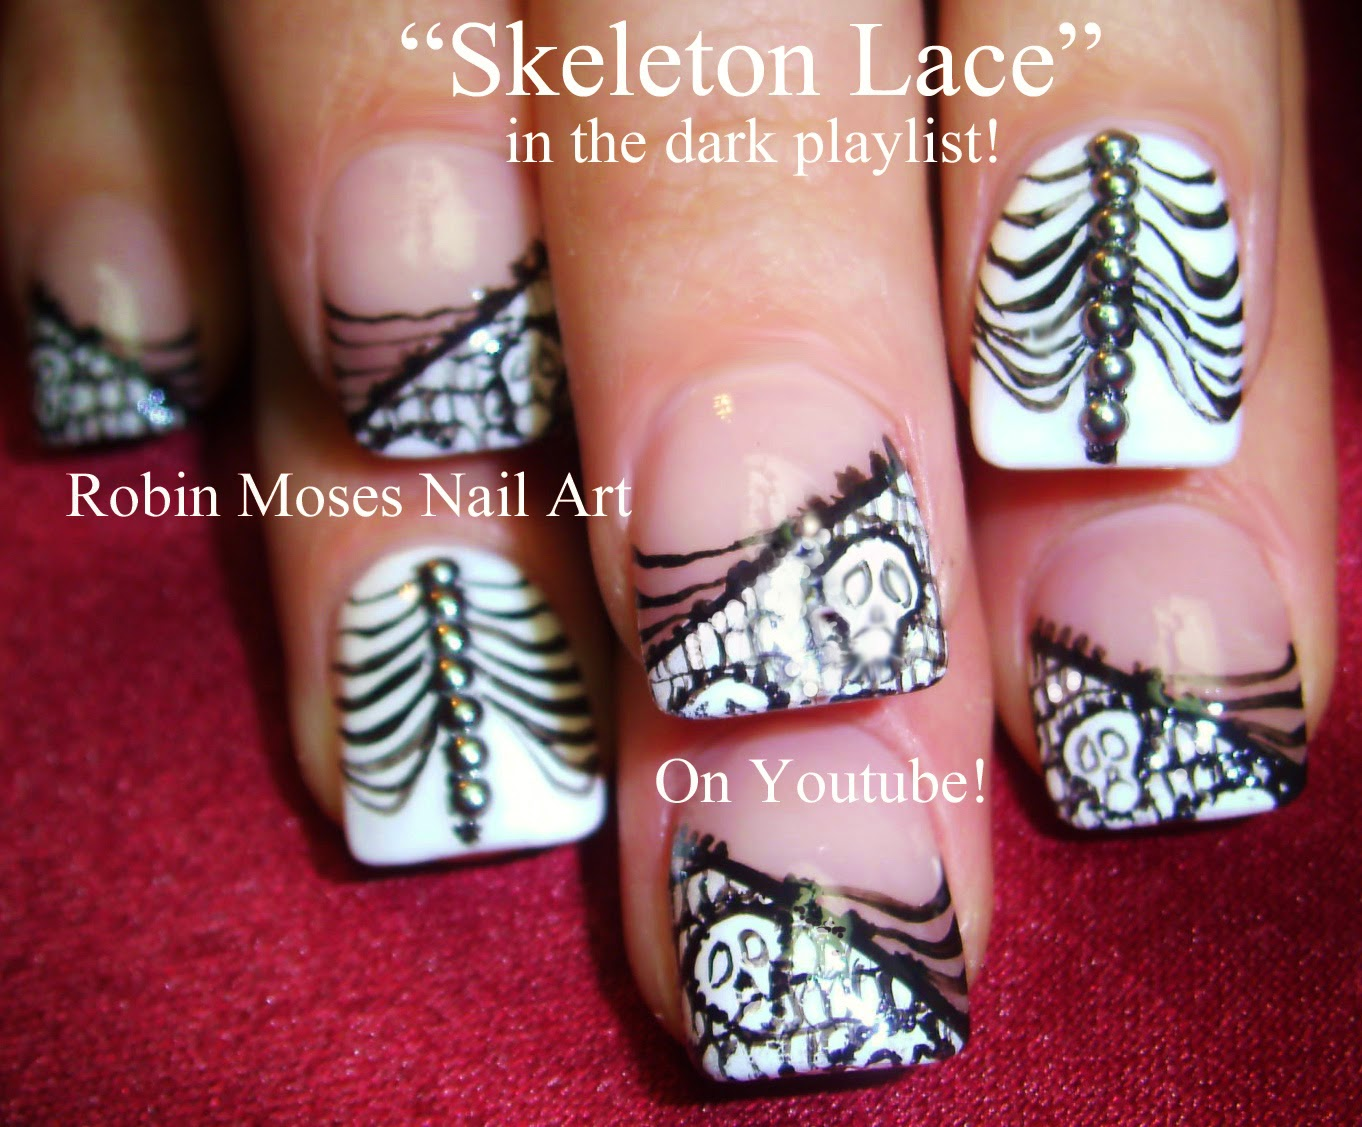 Robin moses nail art skull nails skeleton nails skeleton skull nails skeleton nails skeleton lace skull lace nails halloween nails halloween nail art nail art diy nail art easy halloween nails prinsesfo Images